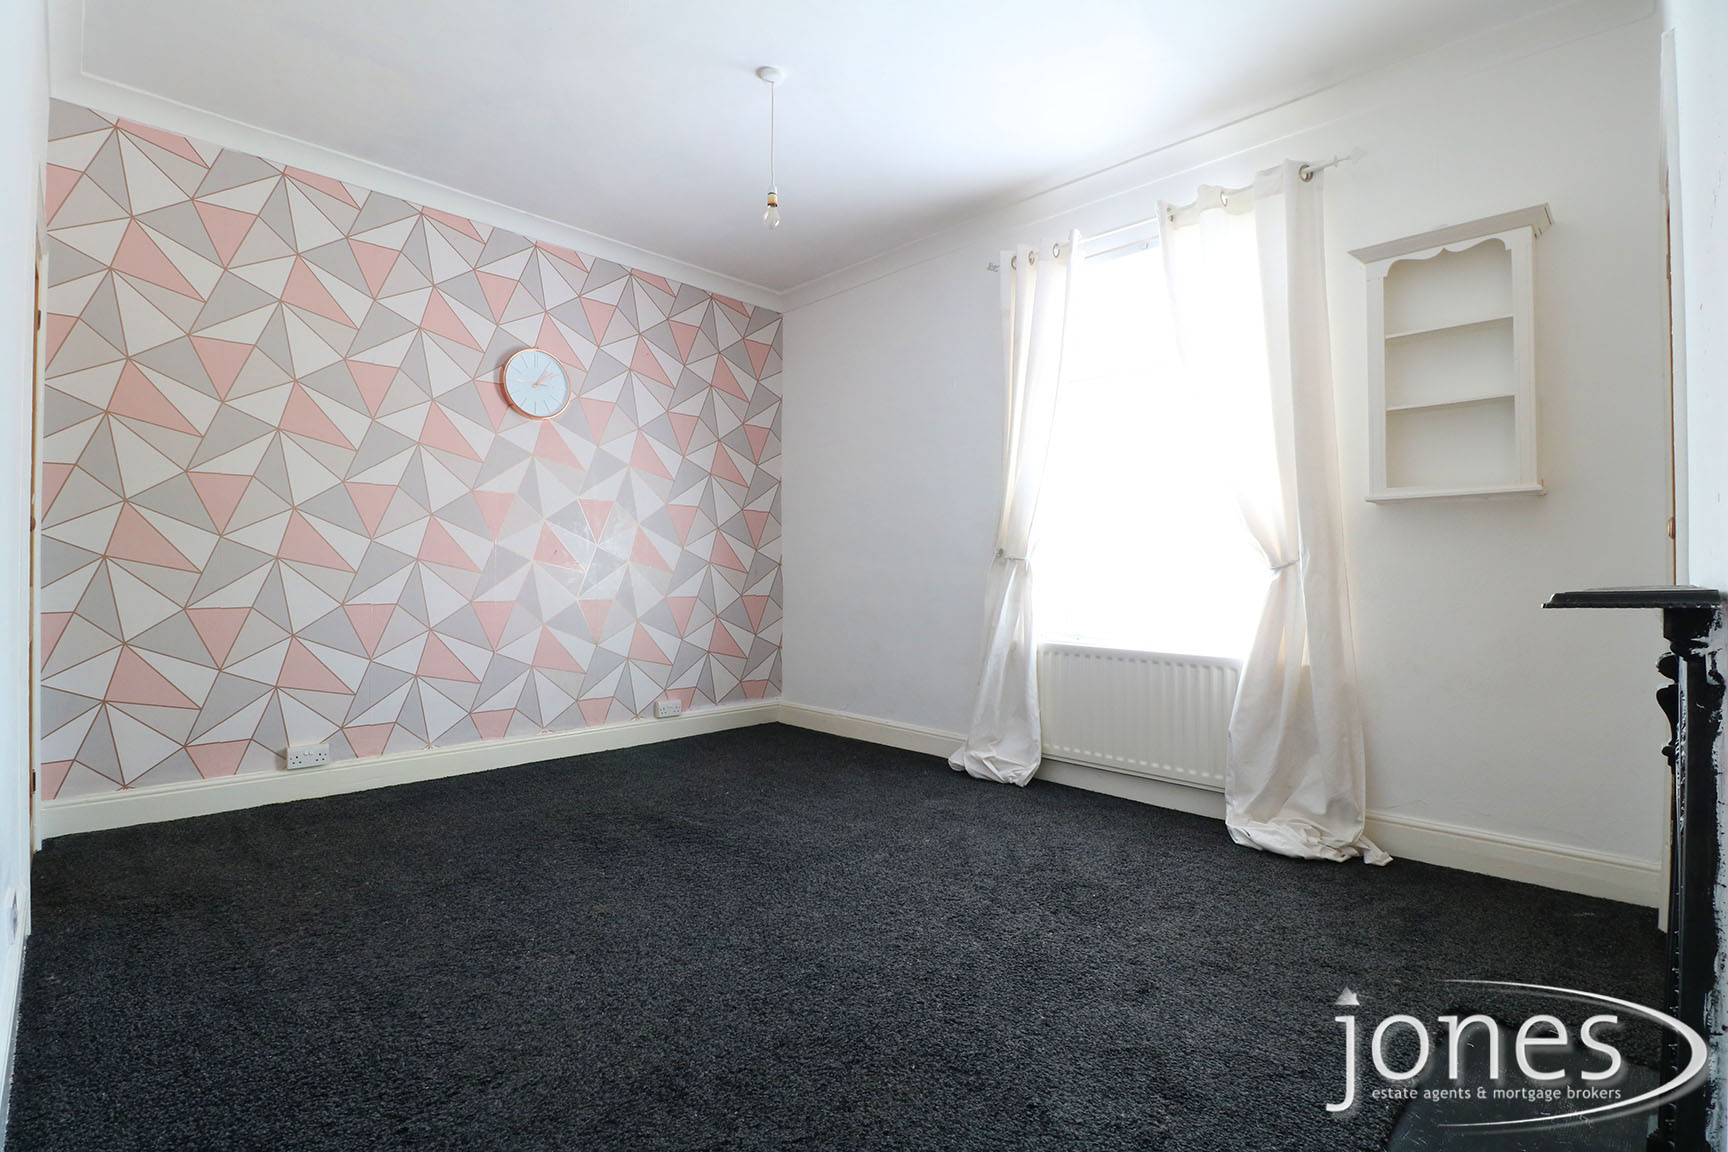 Home for Sale Let - Photo 11 Station Road Norton Stockton on Tees TS20 1PE